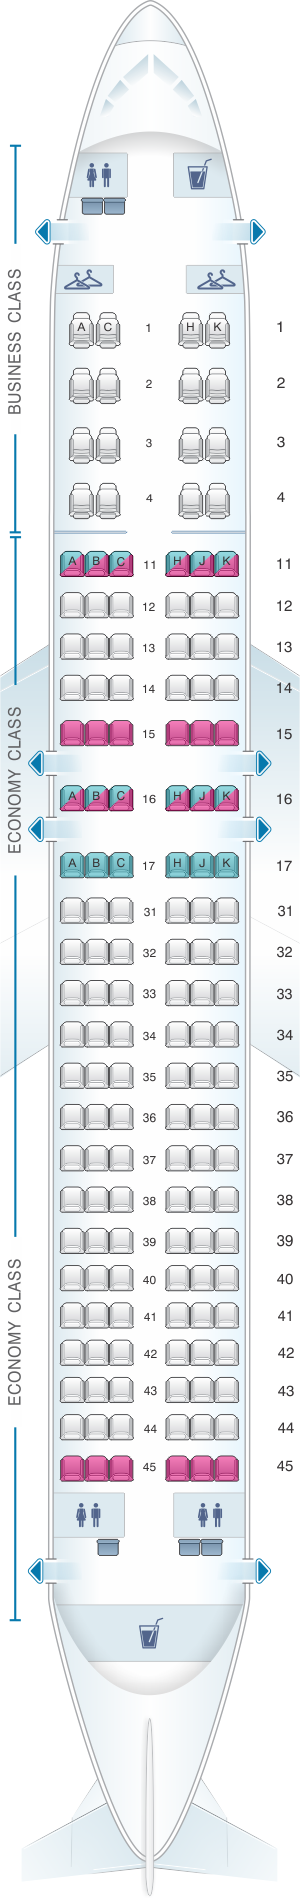 Seat map for Air Astana Airbus A320 232